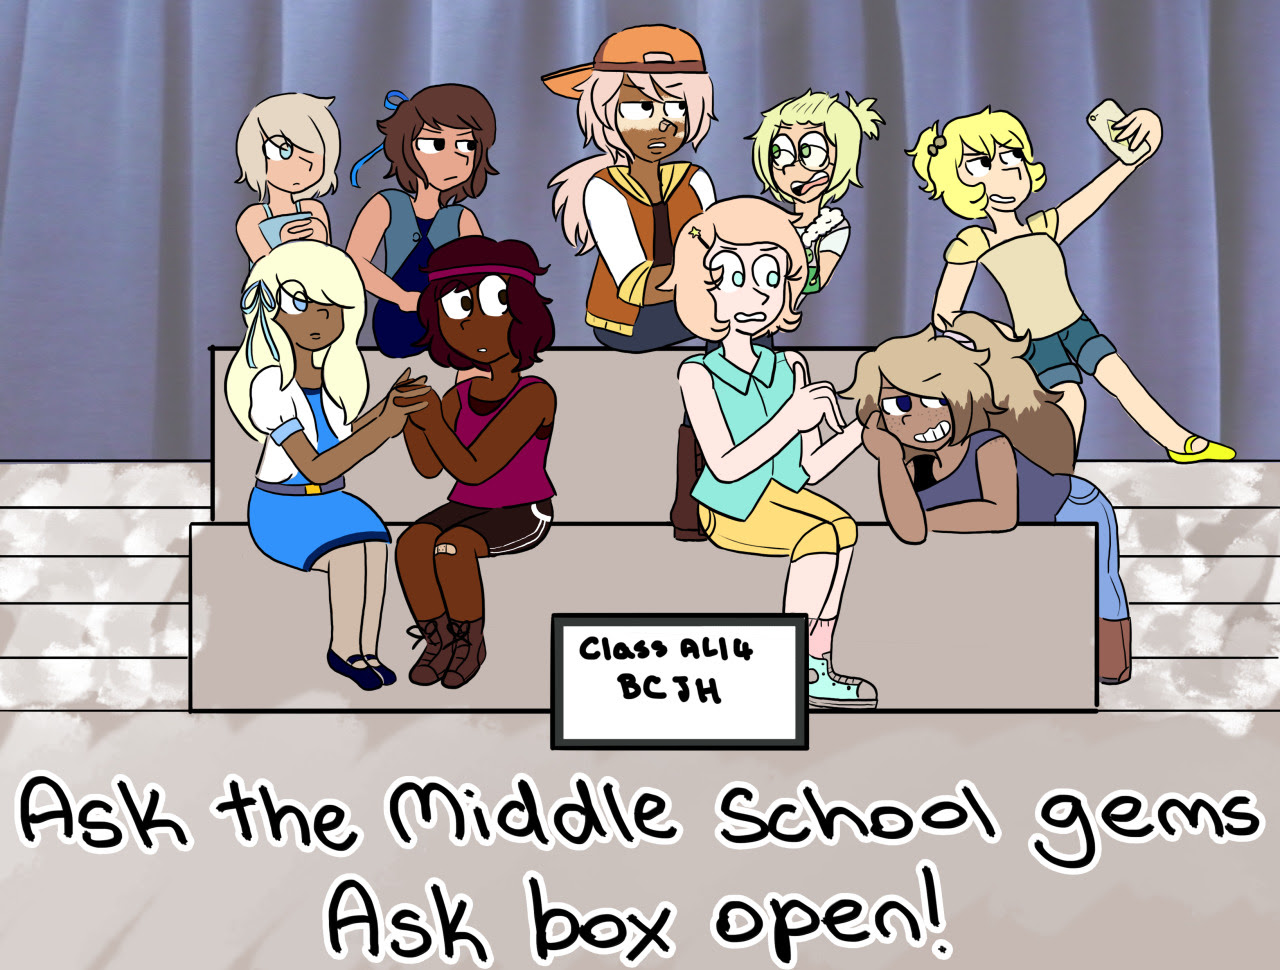 Ask box is open! Send some asks in for the gem squad!